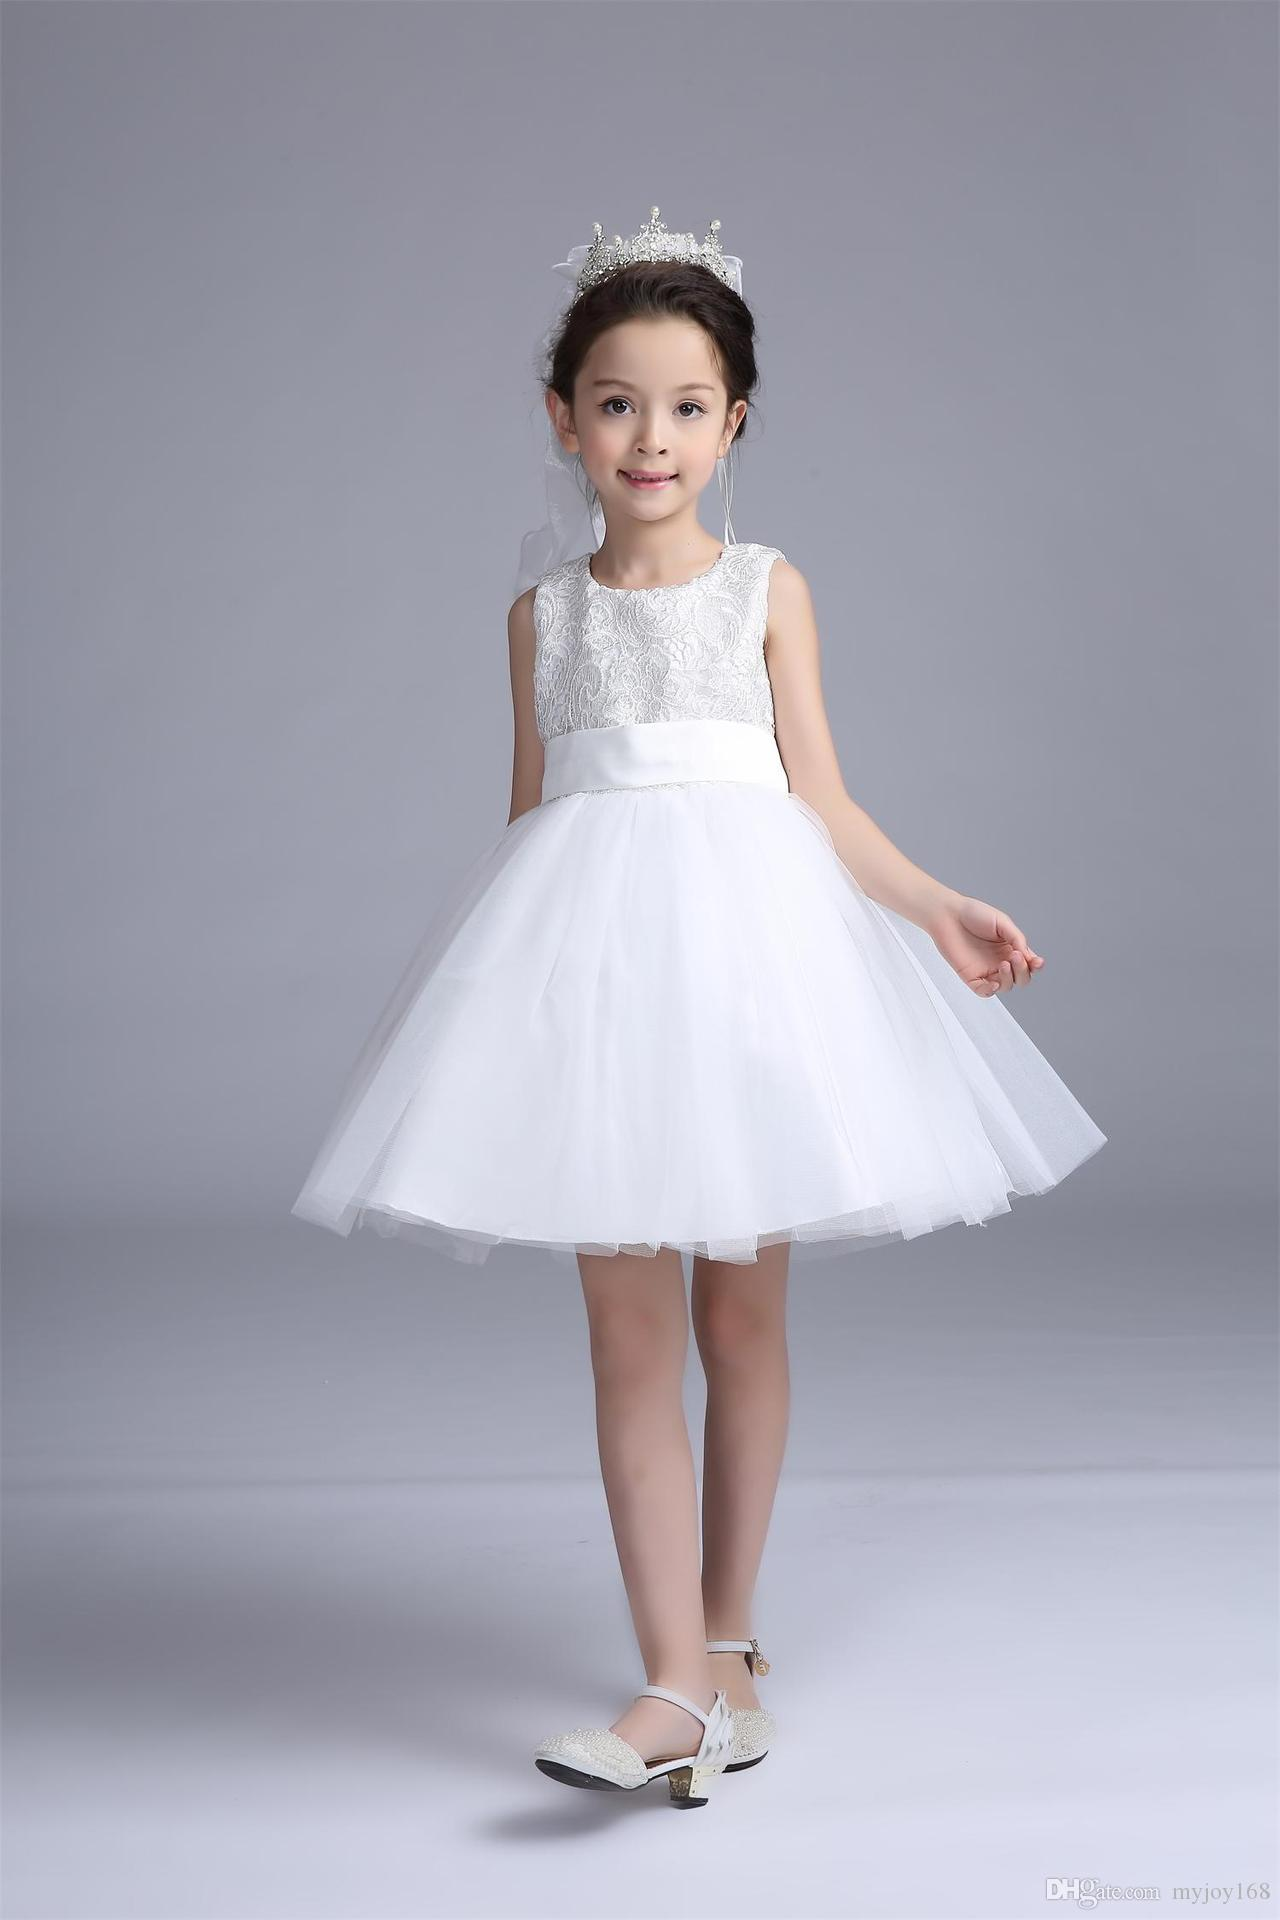 Baby Girl Children S Clothing Wedding Dress Princess